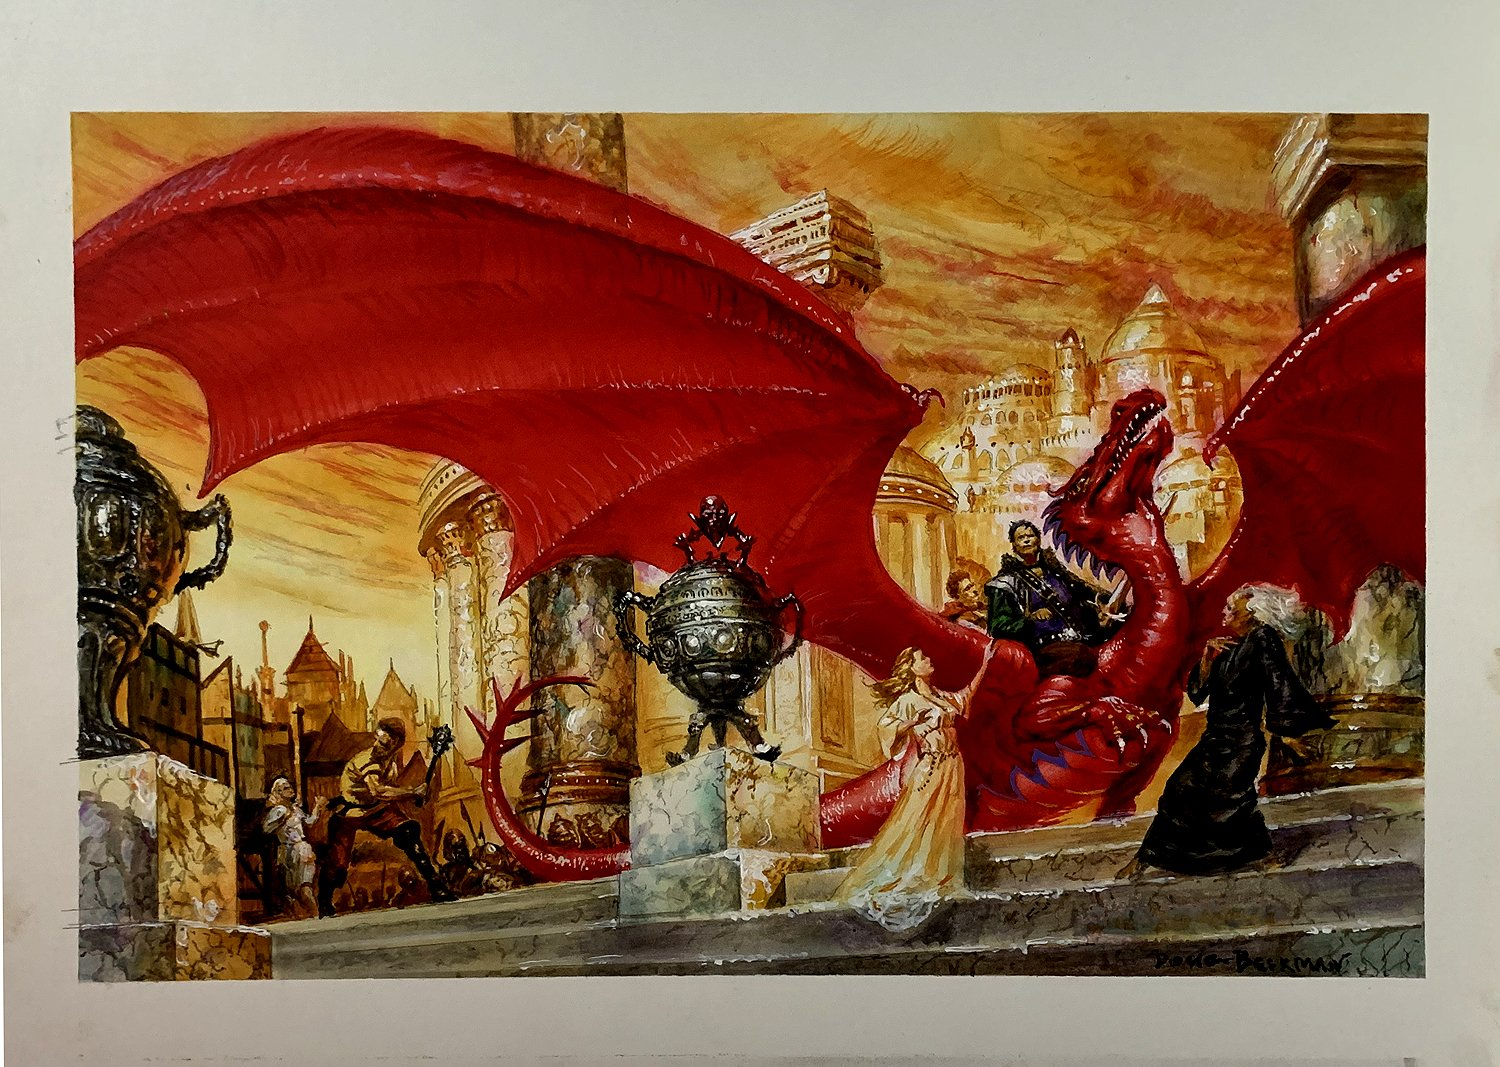 'Wizard's First Rule' Super Detailed Mock Up Cover Painting (1994)